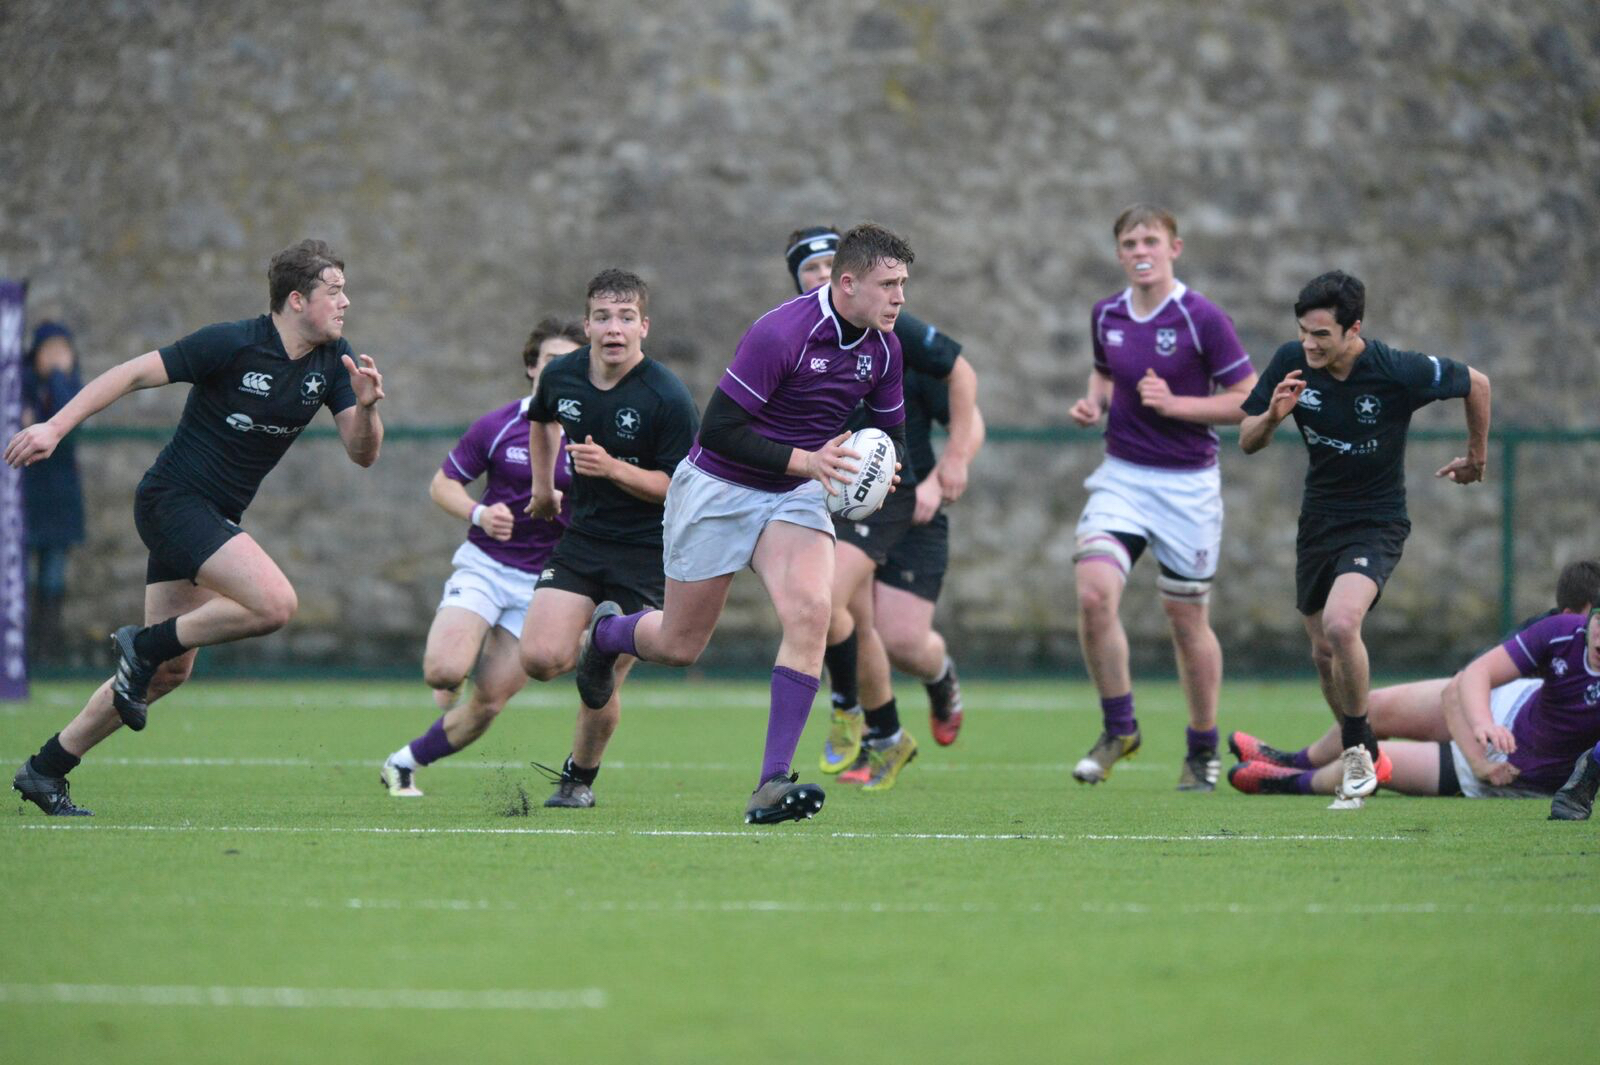 Campbell College V Clongowes Seniors_First match on new pitch.jpg